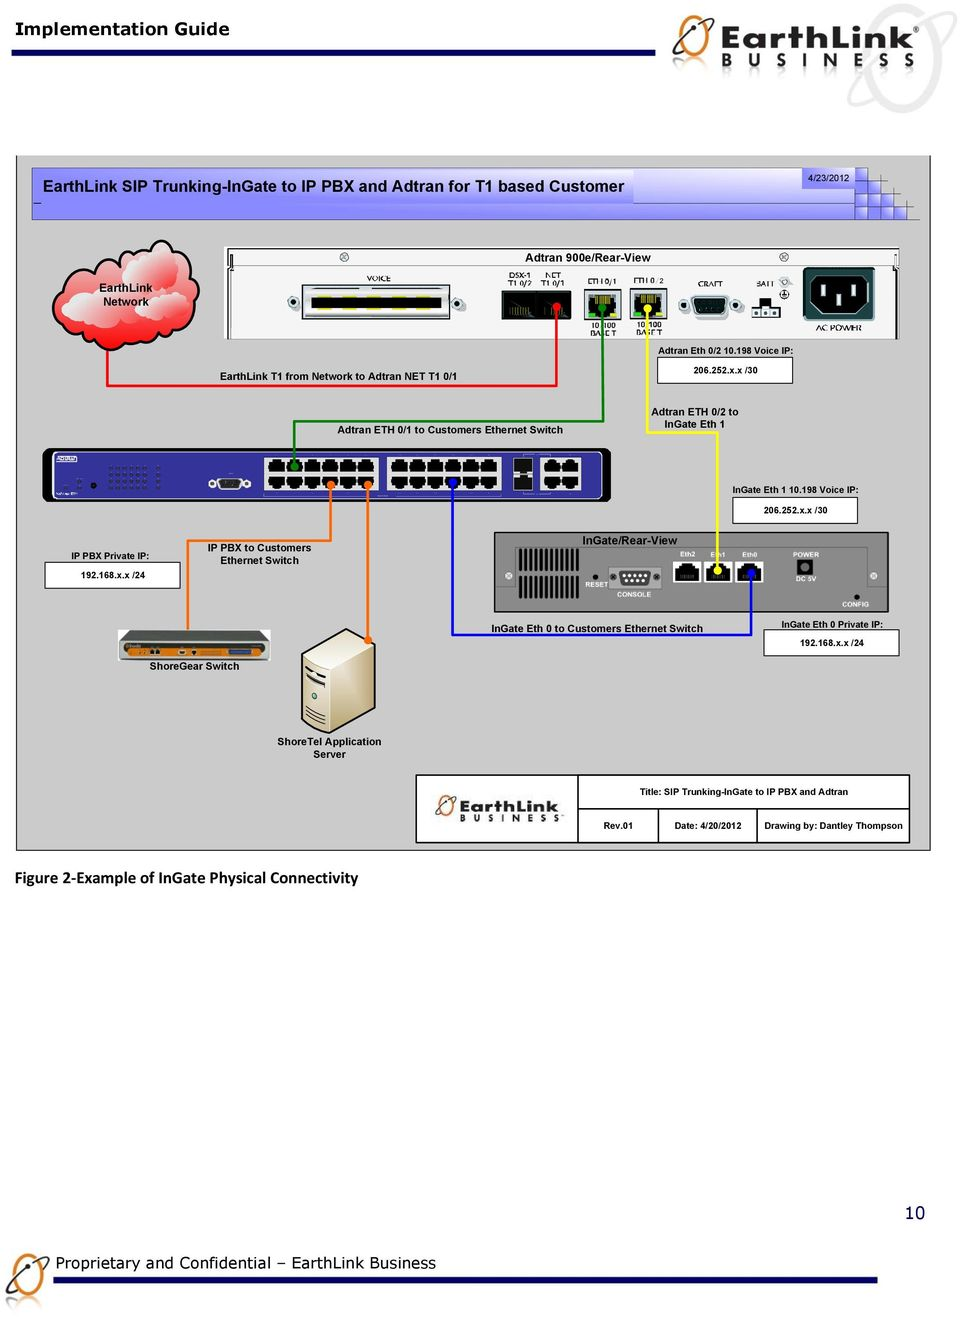 198 Voice IP: EarthLink T1 from Network to Adtran NET T1 0/1 206.252.x.x /30 Adtran ETH 0/1 to Customers Ethernet Switch Adtran ETH 0/2 to InGate Eth 1 InGate Eth 1 10.198 Voice IP: 206.252.x.x /30 IP PBX Private IP: 192.